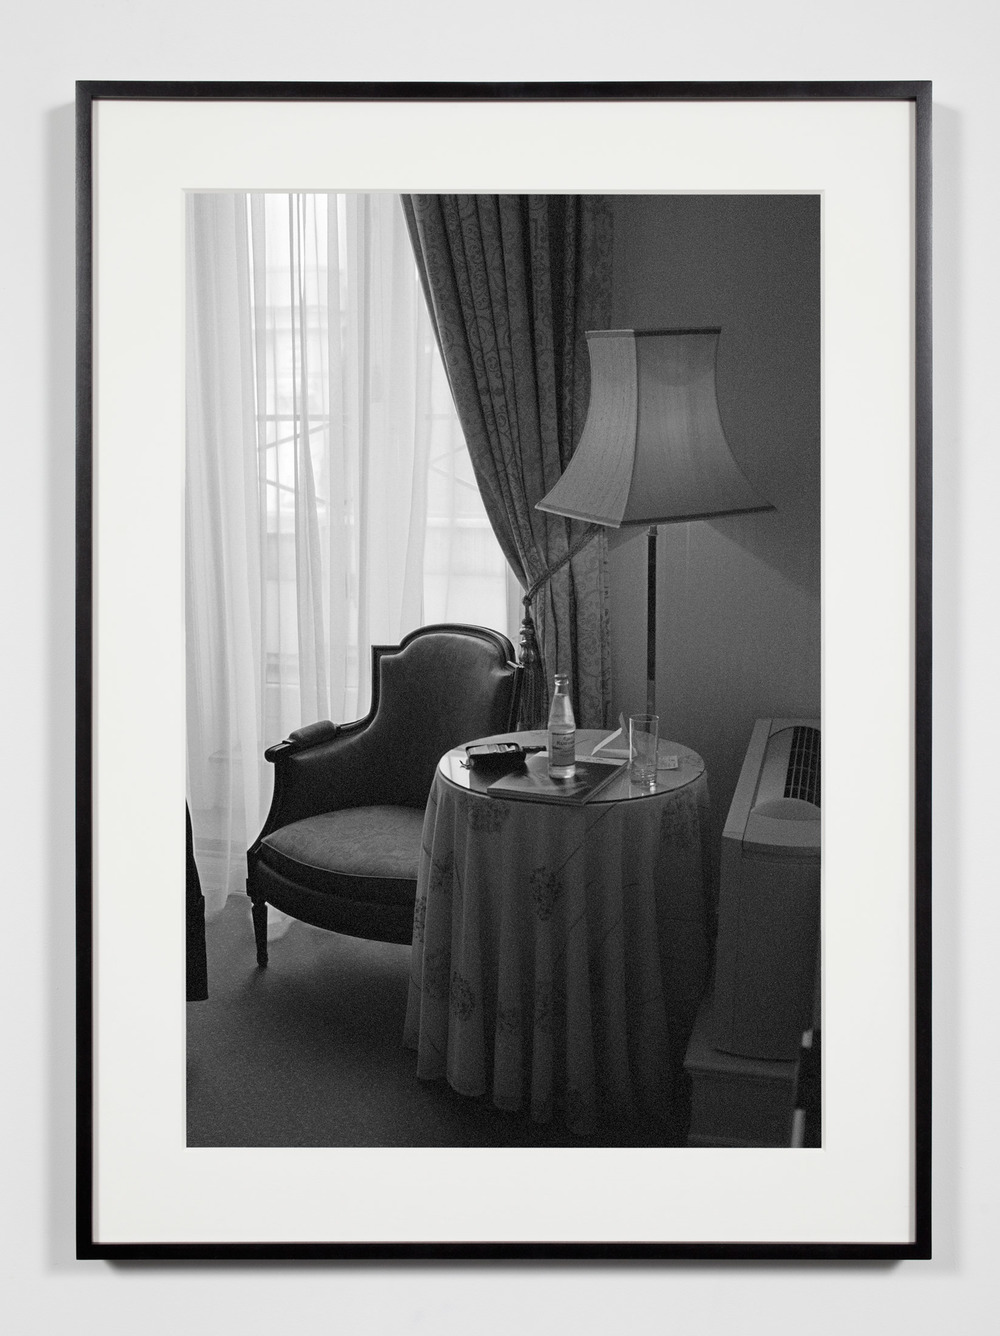 Hotel Room, Copenhagen, Denmark, May 15, 2010    2011   Epson Ultrachrome K3 archival ink jet print on Hahnemühle Photo Rag paper  36 3/8 x 26 3/8 inches   Industrial Portraits, 2008–